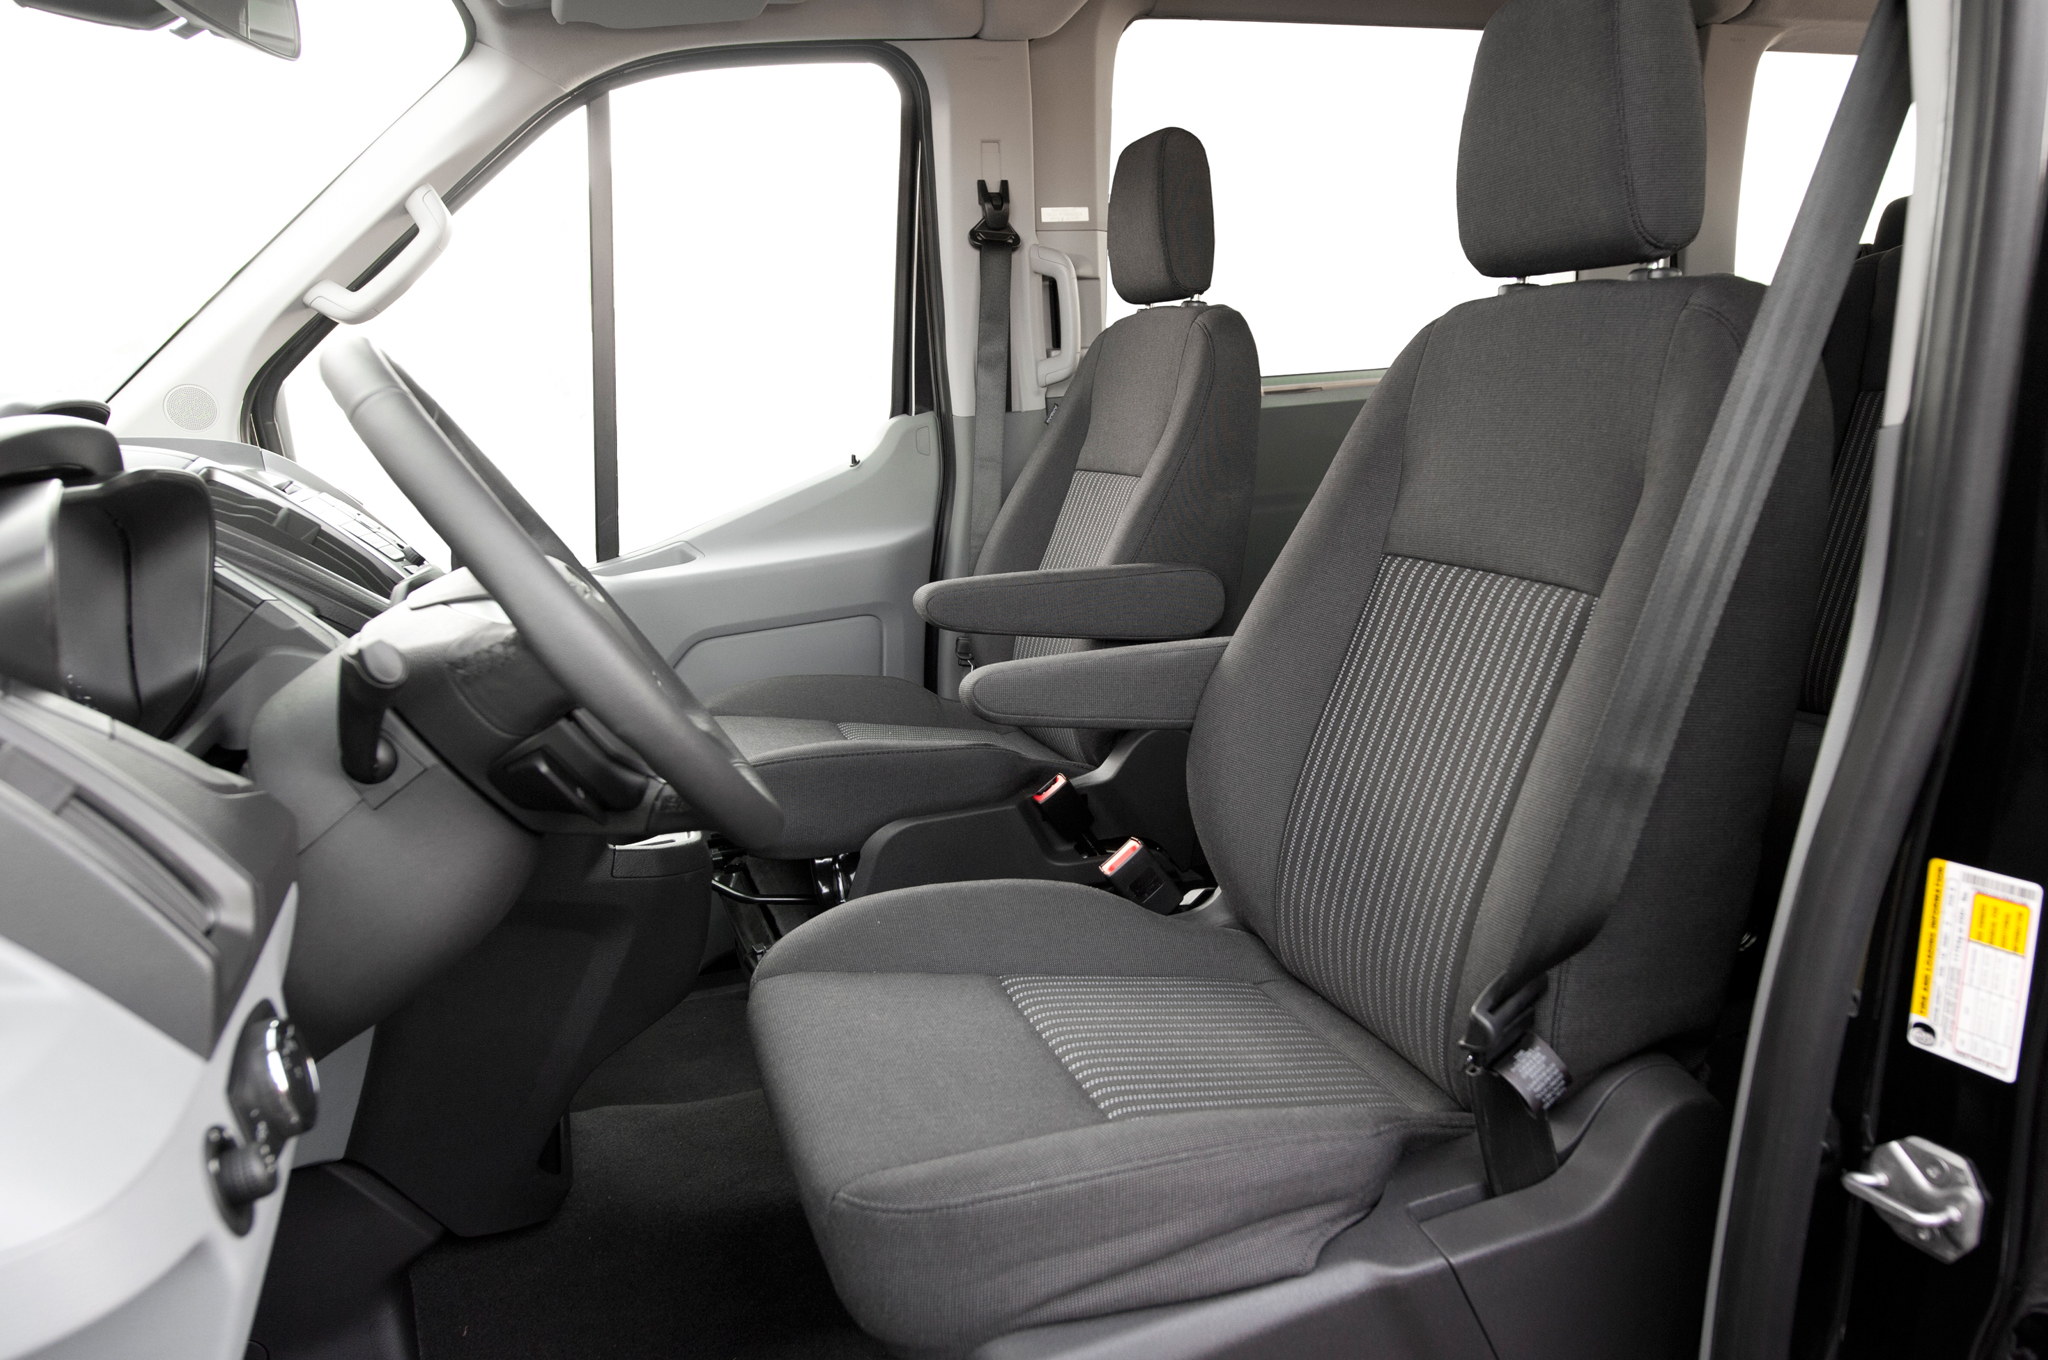 2015 Ford Transit 150 Front Seat Interior (View 1 of 13)